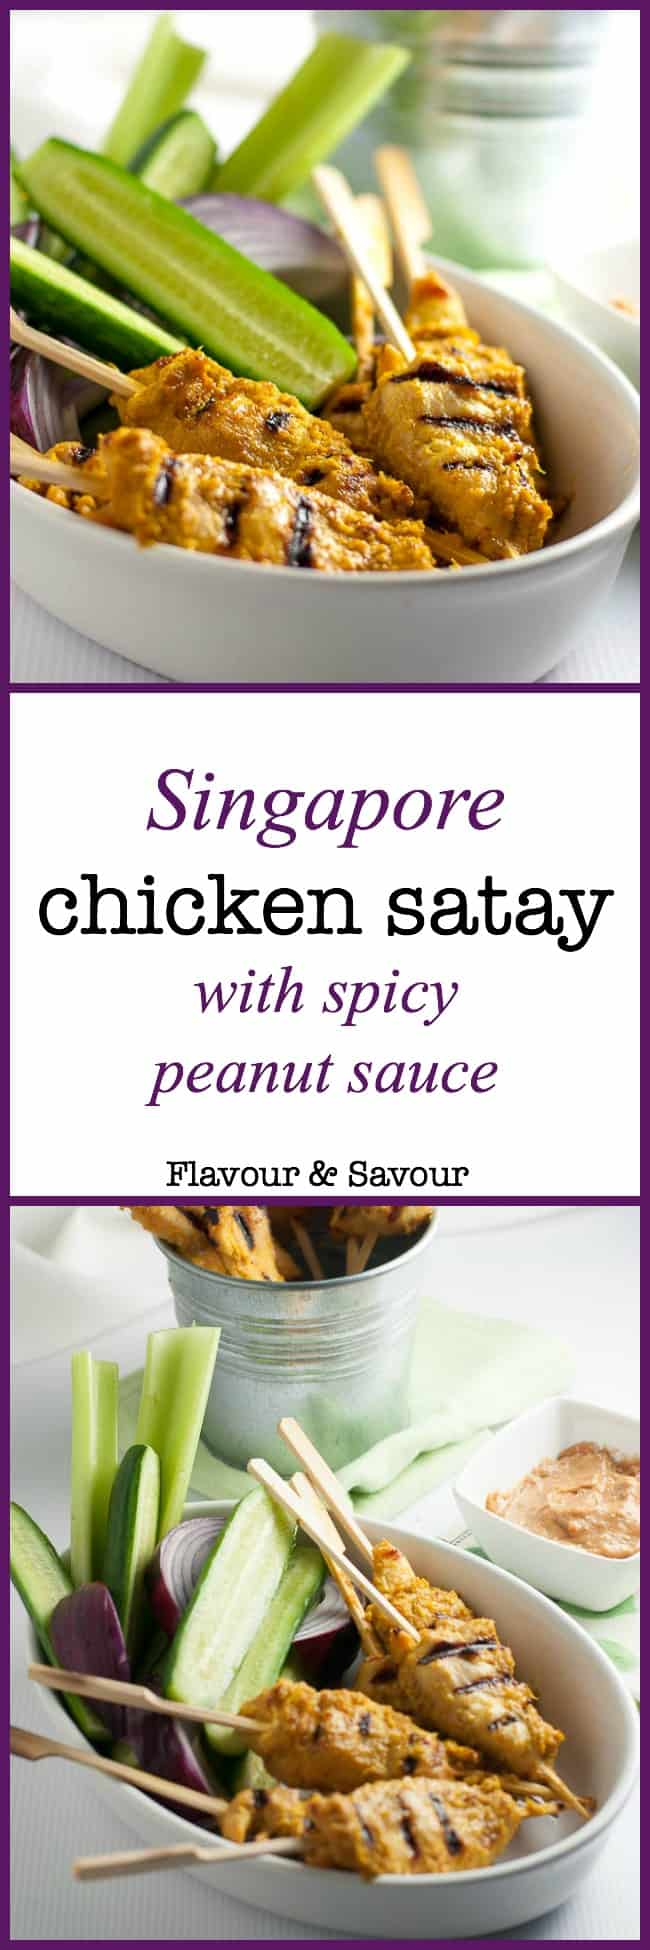 This Simple Singapore Chicken Satay with Peanut Dipping Sauce makes a great appetizer or a light meal, when served with some crunchy veggies. It's crisp and spicy and it's a perfect choice for a barbecue, a party or a simple weeknight meal. It's an easy meal that you can cook on either an indoor or outdoor grill.